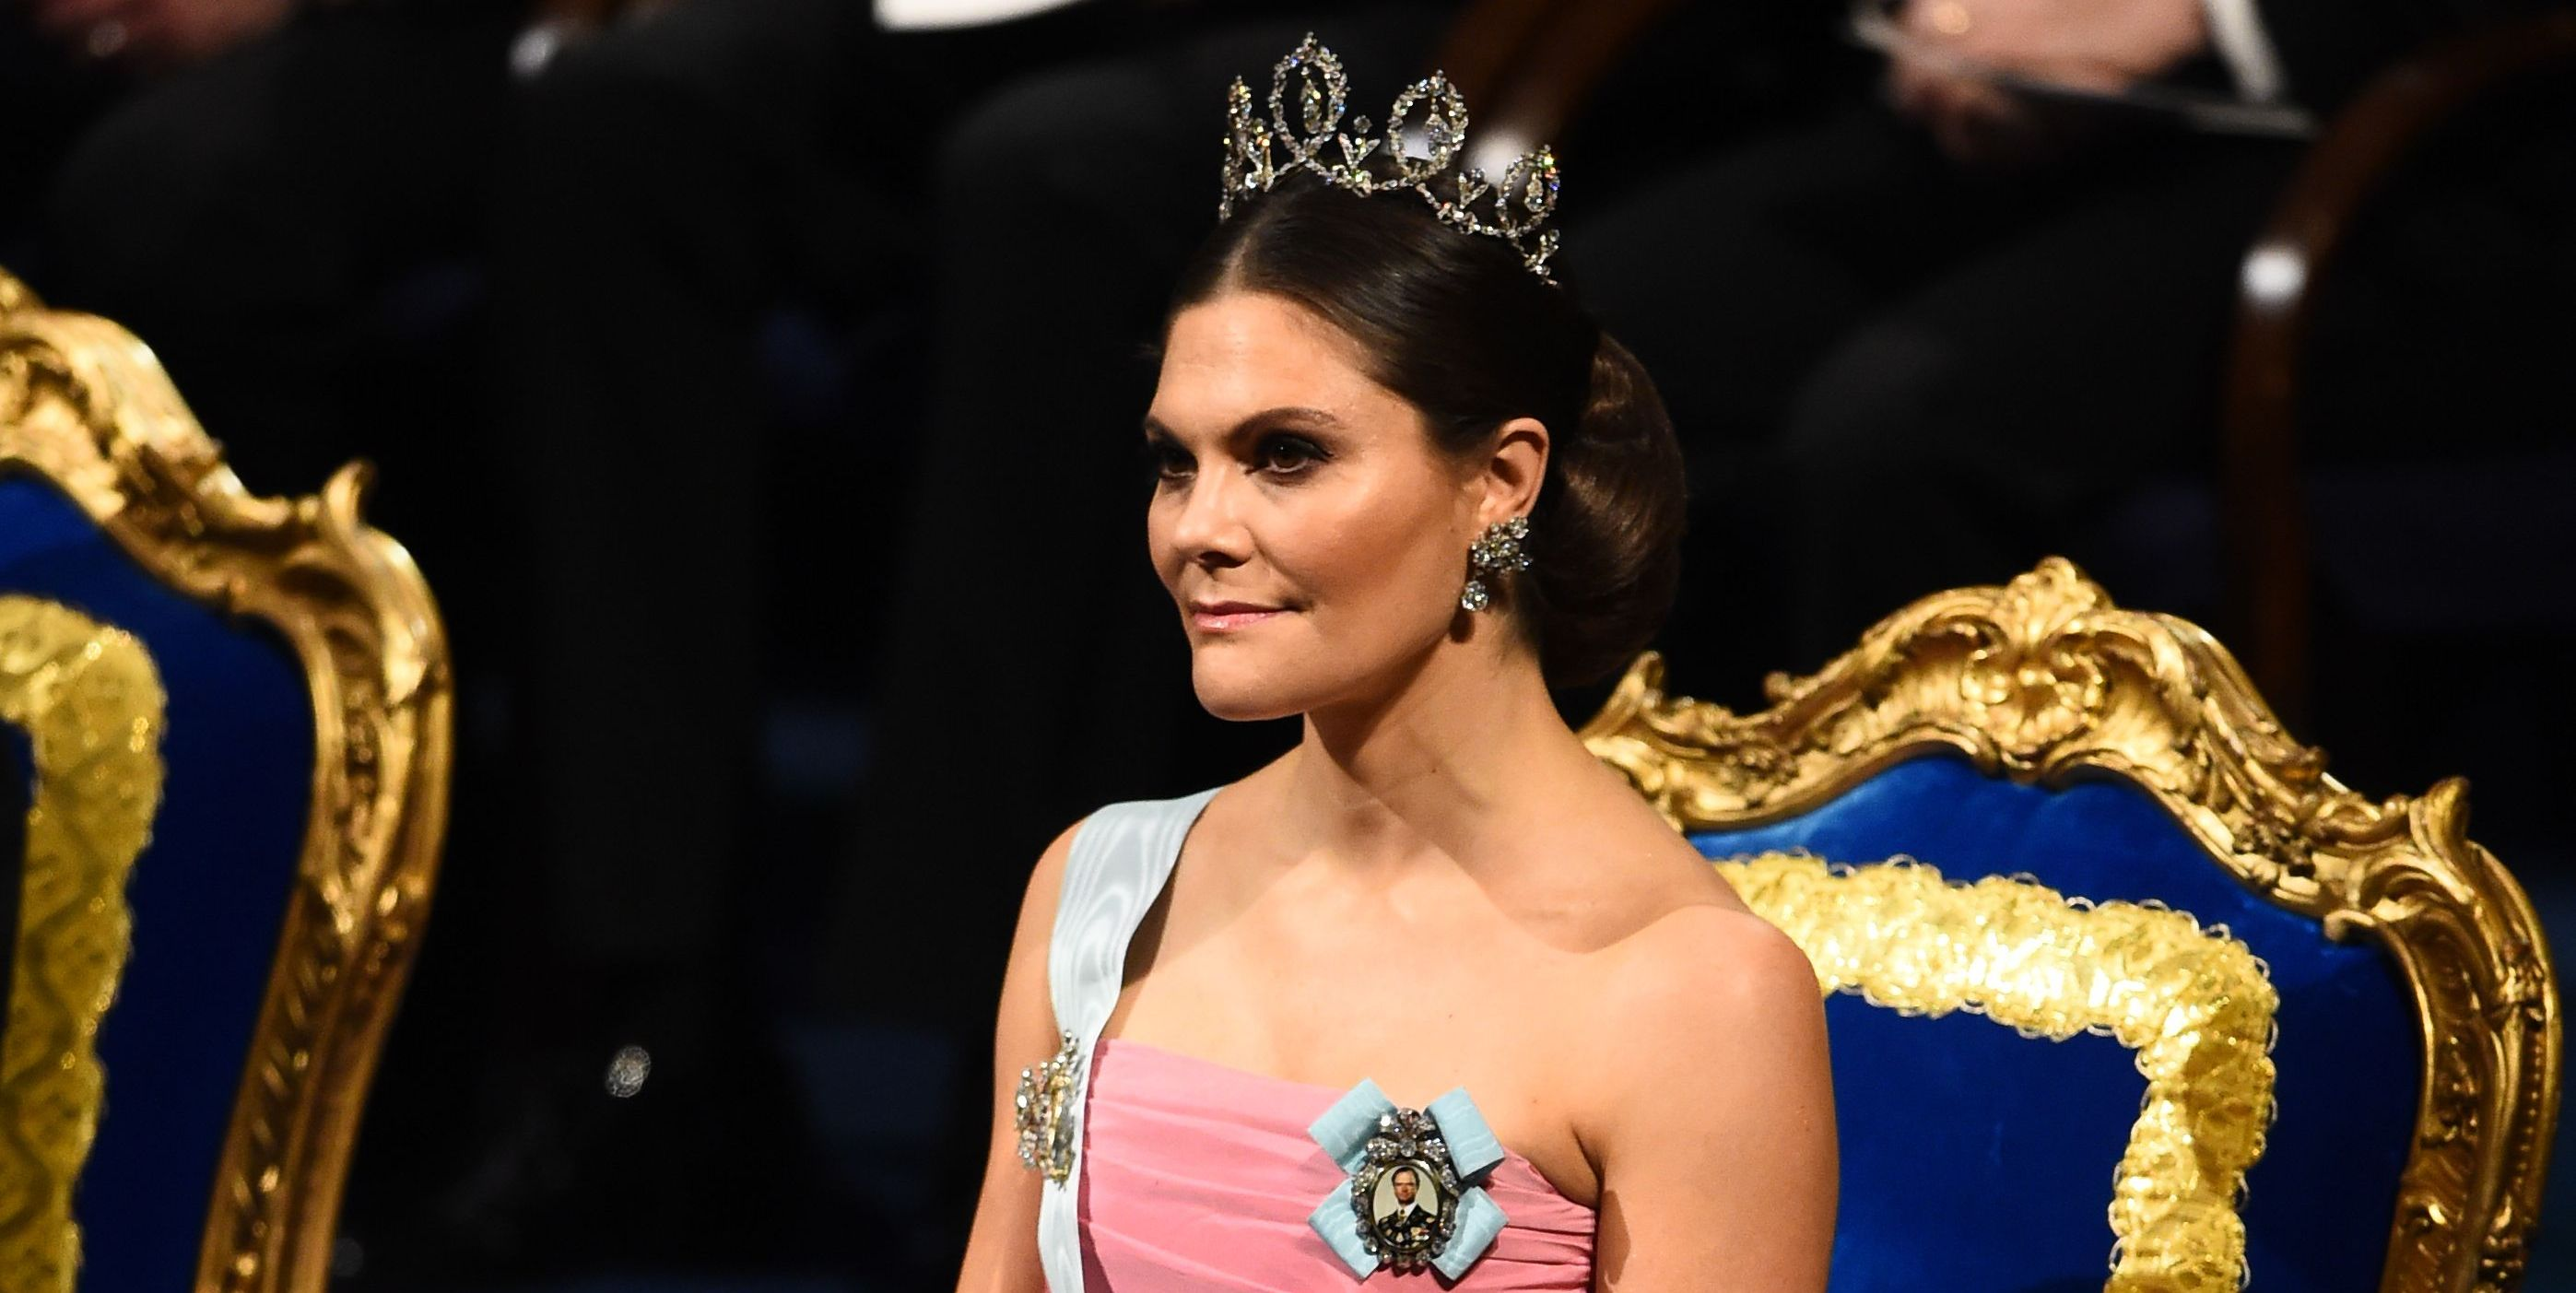 The Swedish Royal Family Broke Out the Tiaras for the Nobel Prize Ceremony